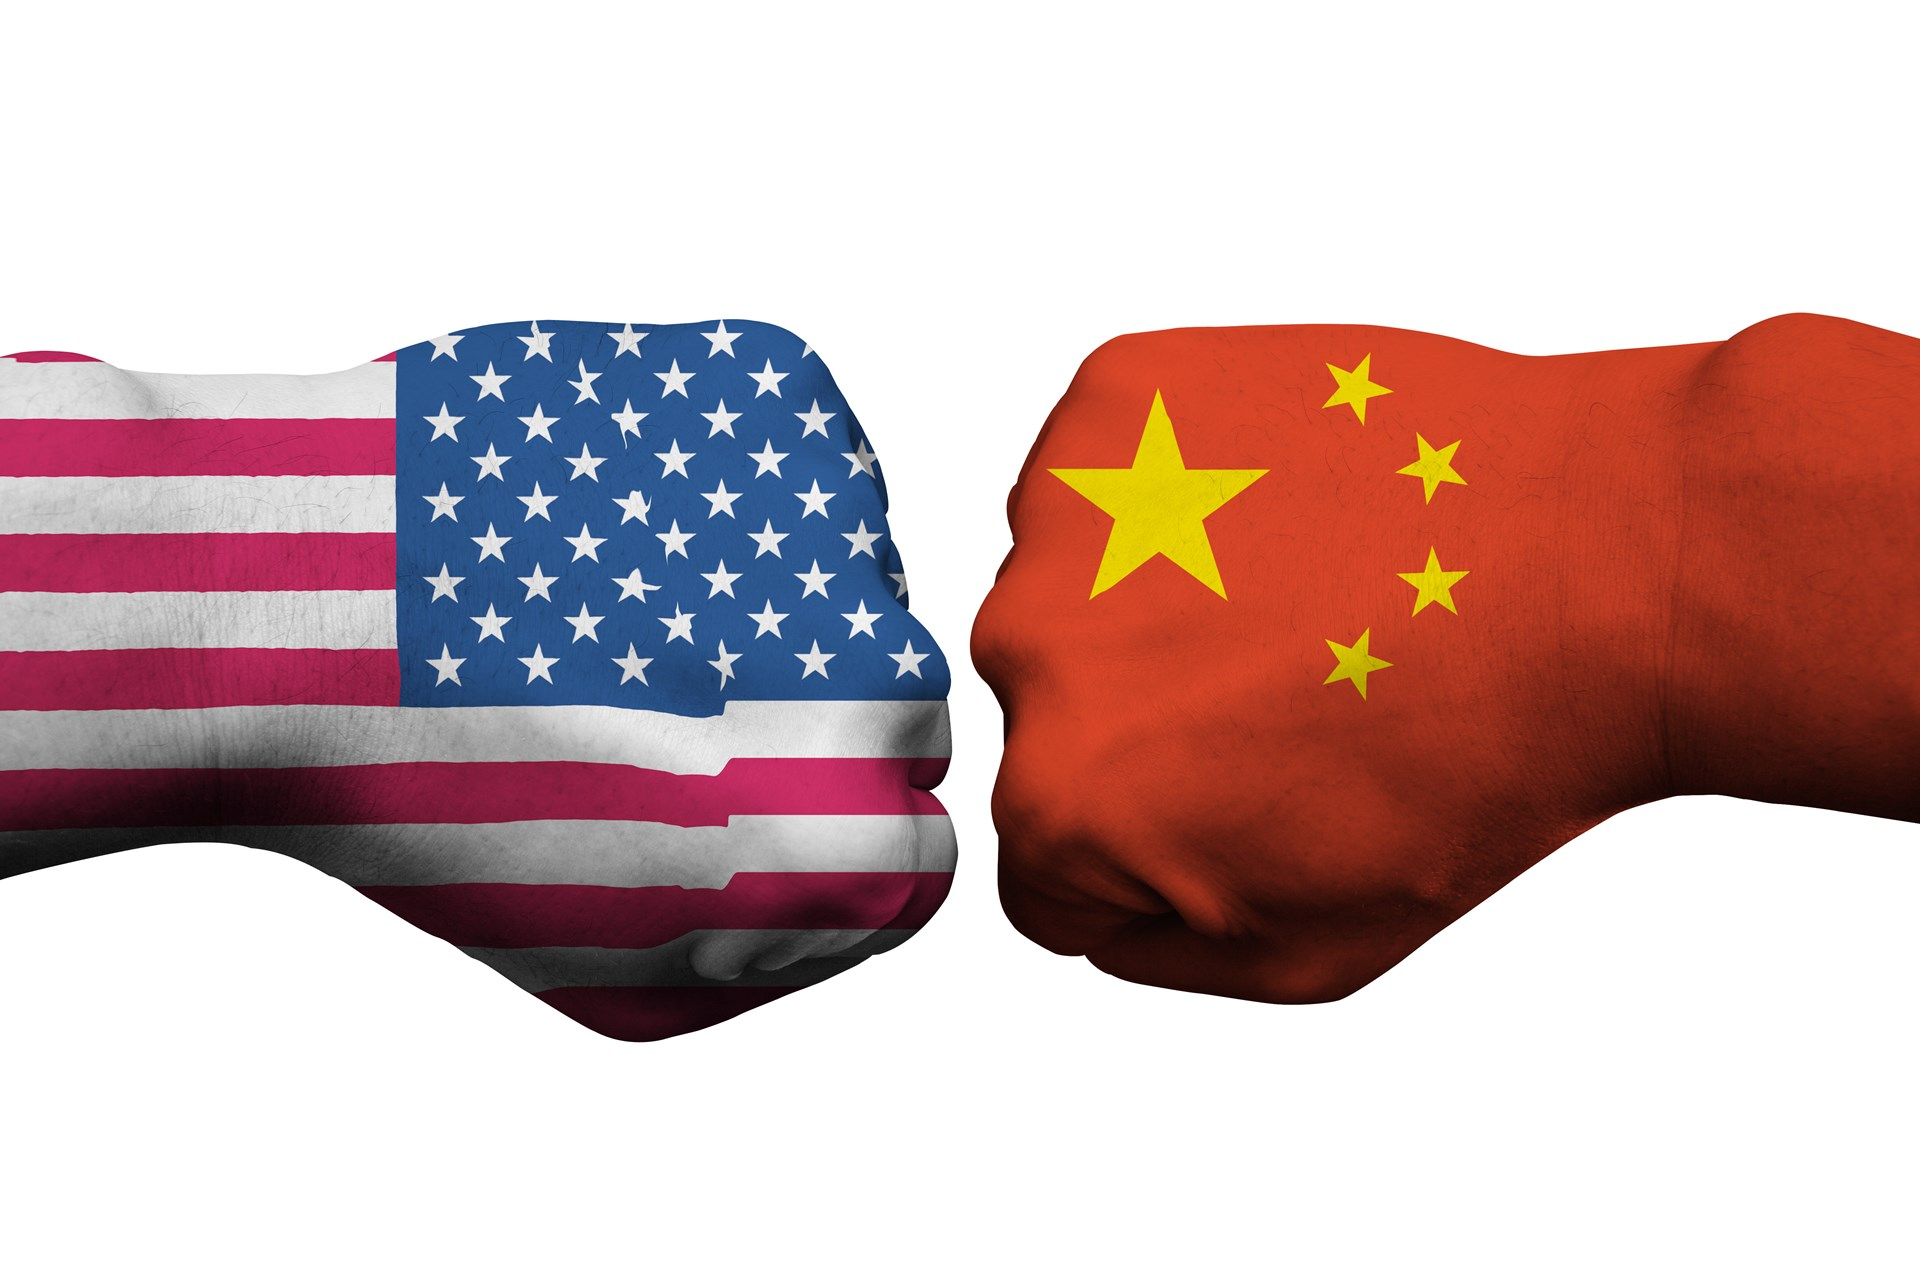 Why Trump's New Tariffs Are an Ominous Omen - Foundation for